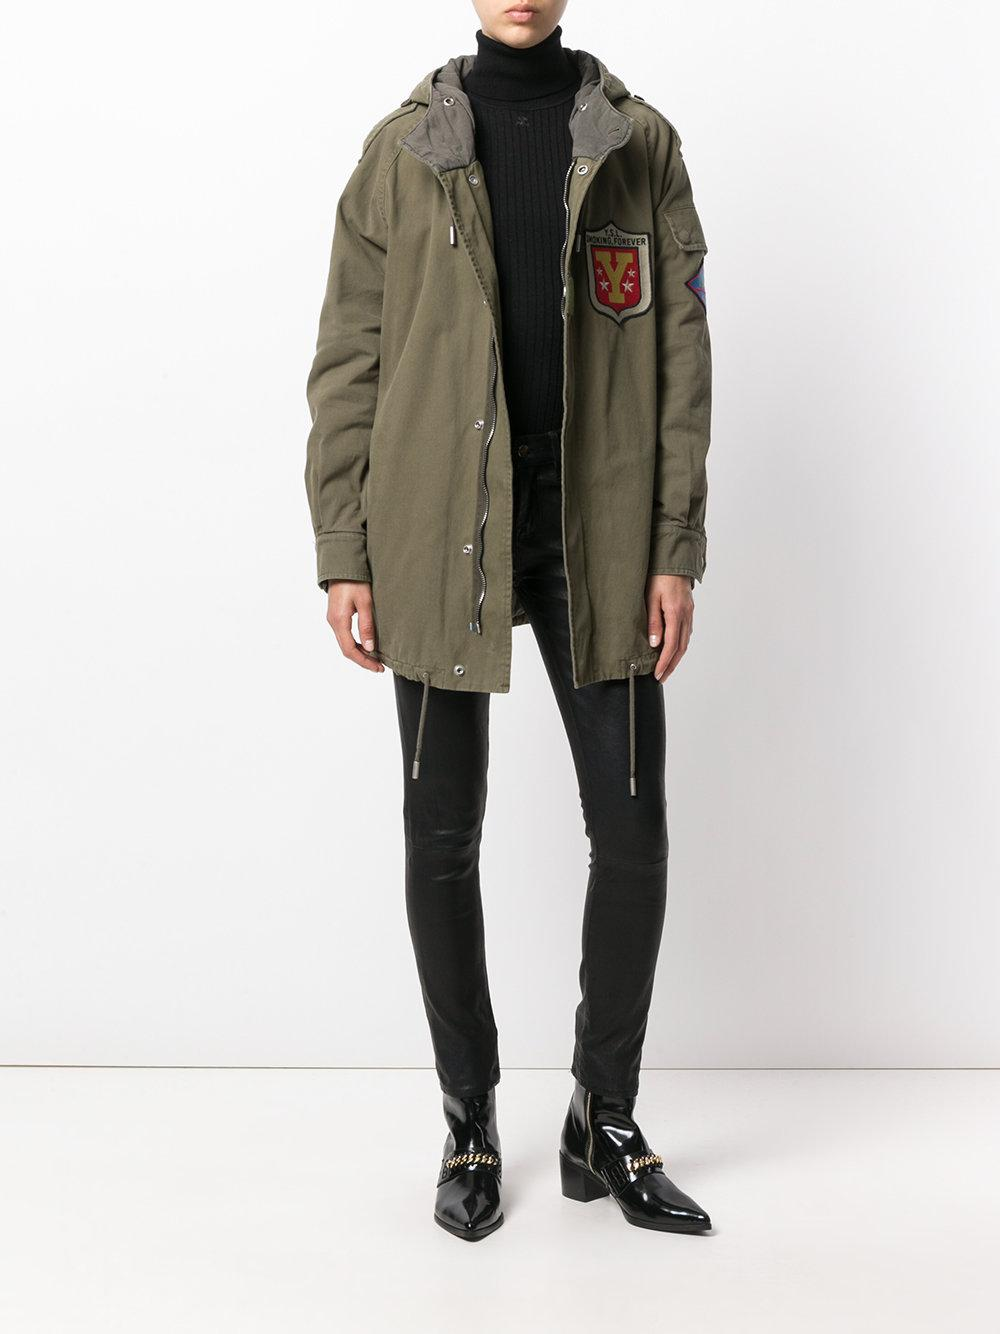 ea4b6937b0d Saint Laurent - Green Hooded Military Parka Coat - Lyst. View fullscreen